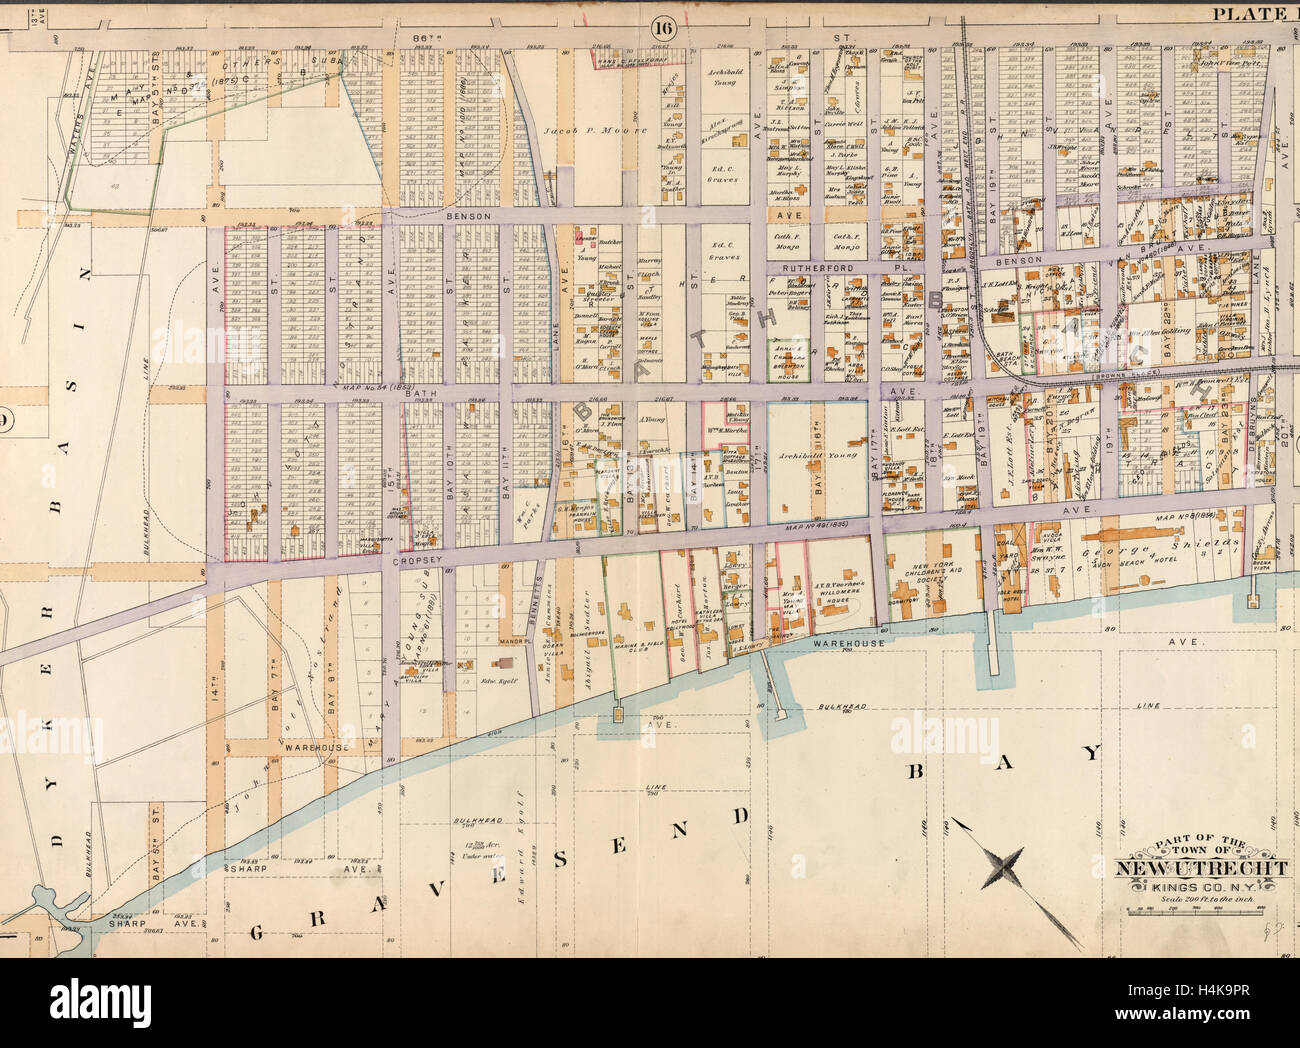 Old map of New York, USA - Stock Image